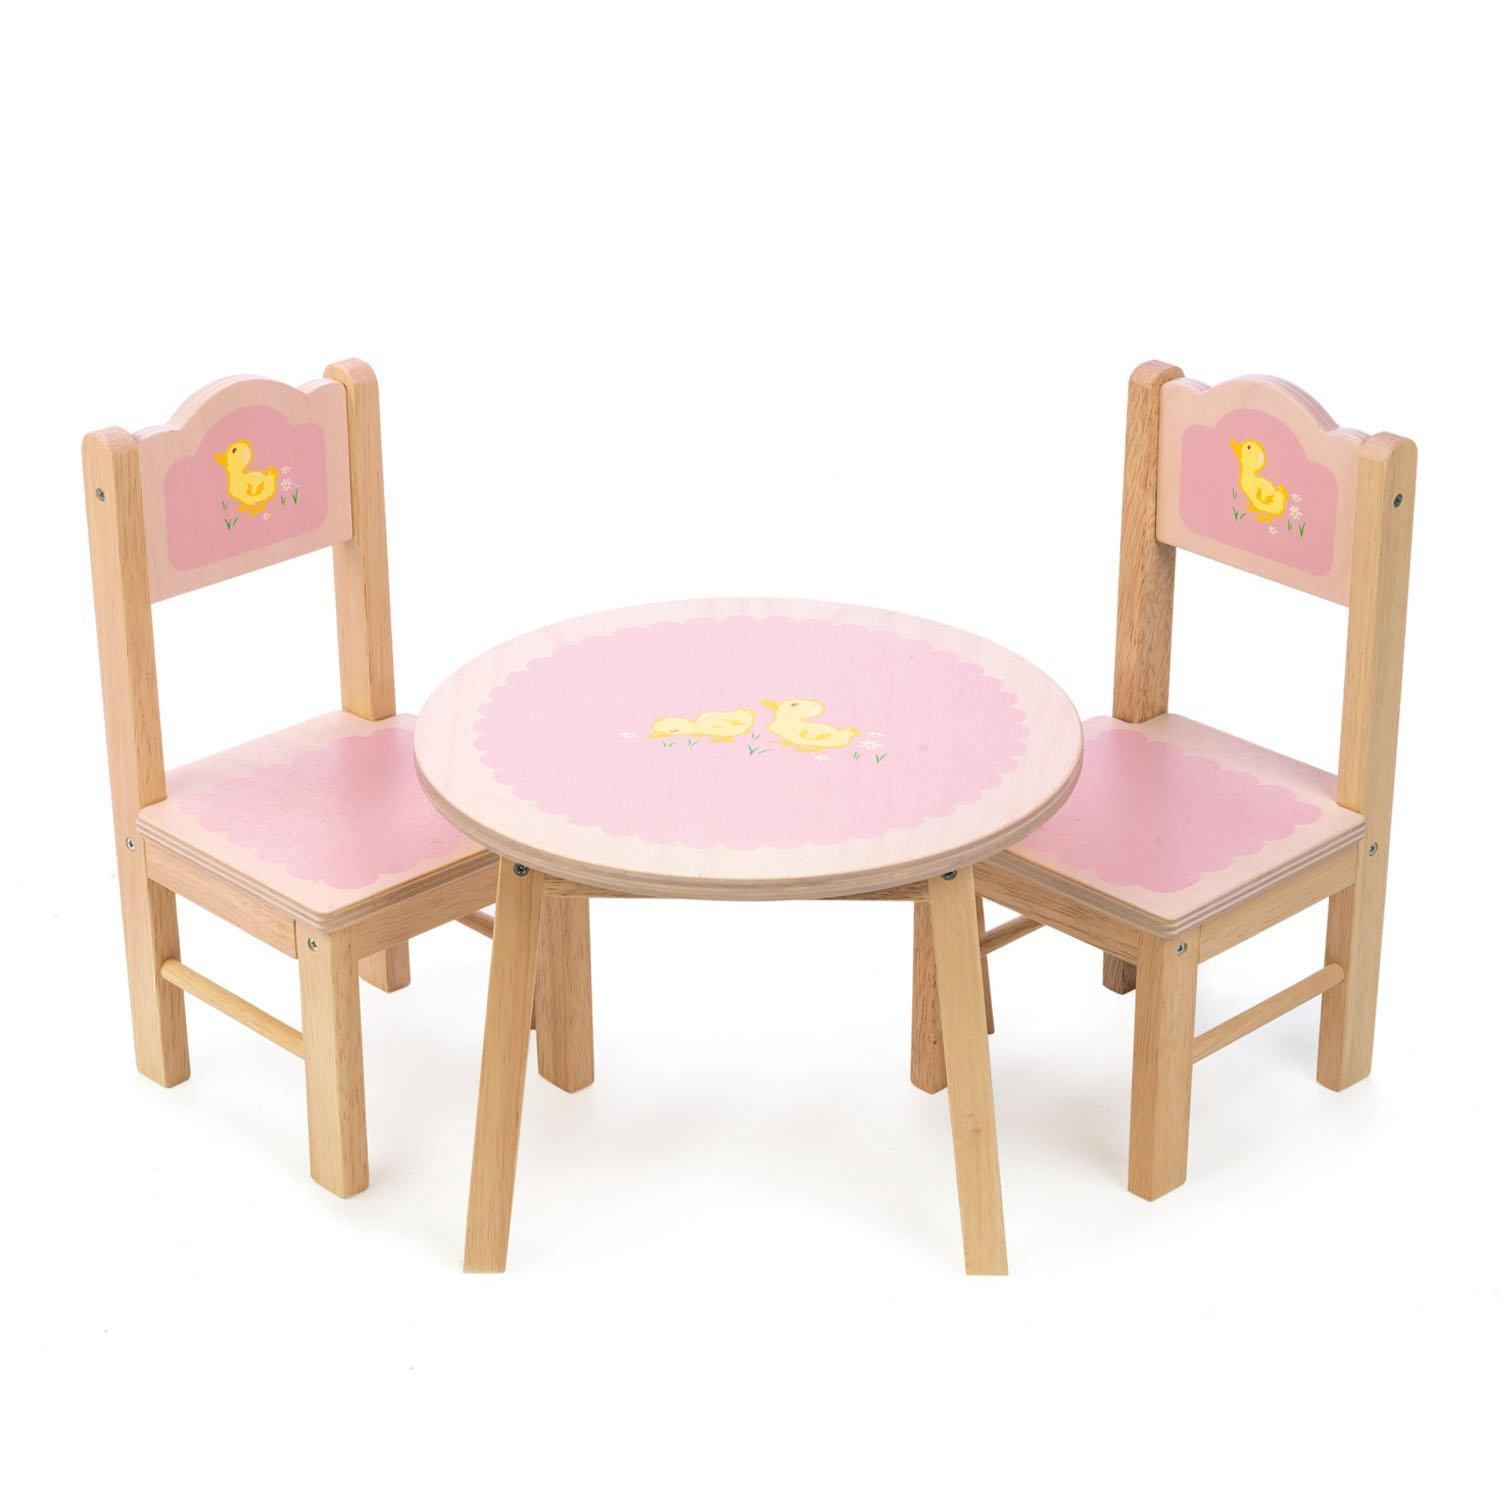 New Sweetiepie Table and Chairs for Dolls #2